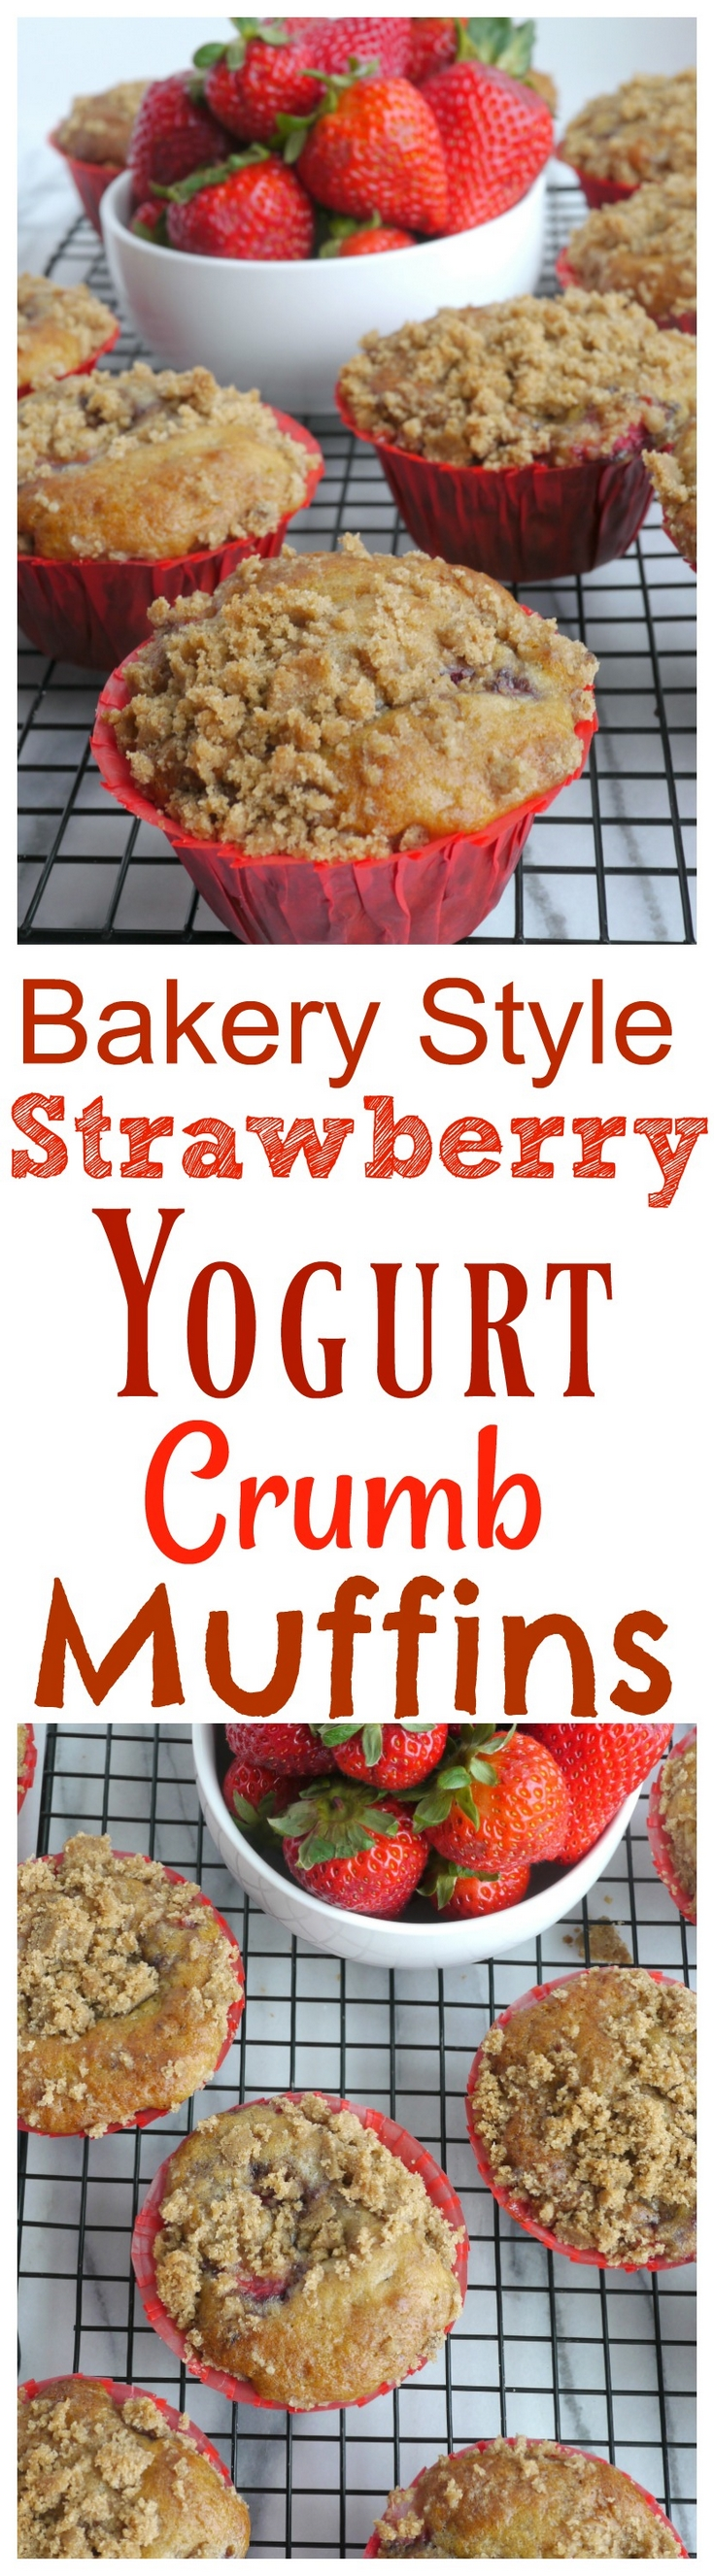 If you enjoy BIG and fluffy bakery style muffins, than you're going to LOVE these delicious Bakery Style Strawberry Yogurt Crumb Muffins. They are the perfect way to get your morning started right. The crumb topping adds the perfect sweetness from NoblePig.com. via @cmpollak1